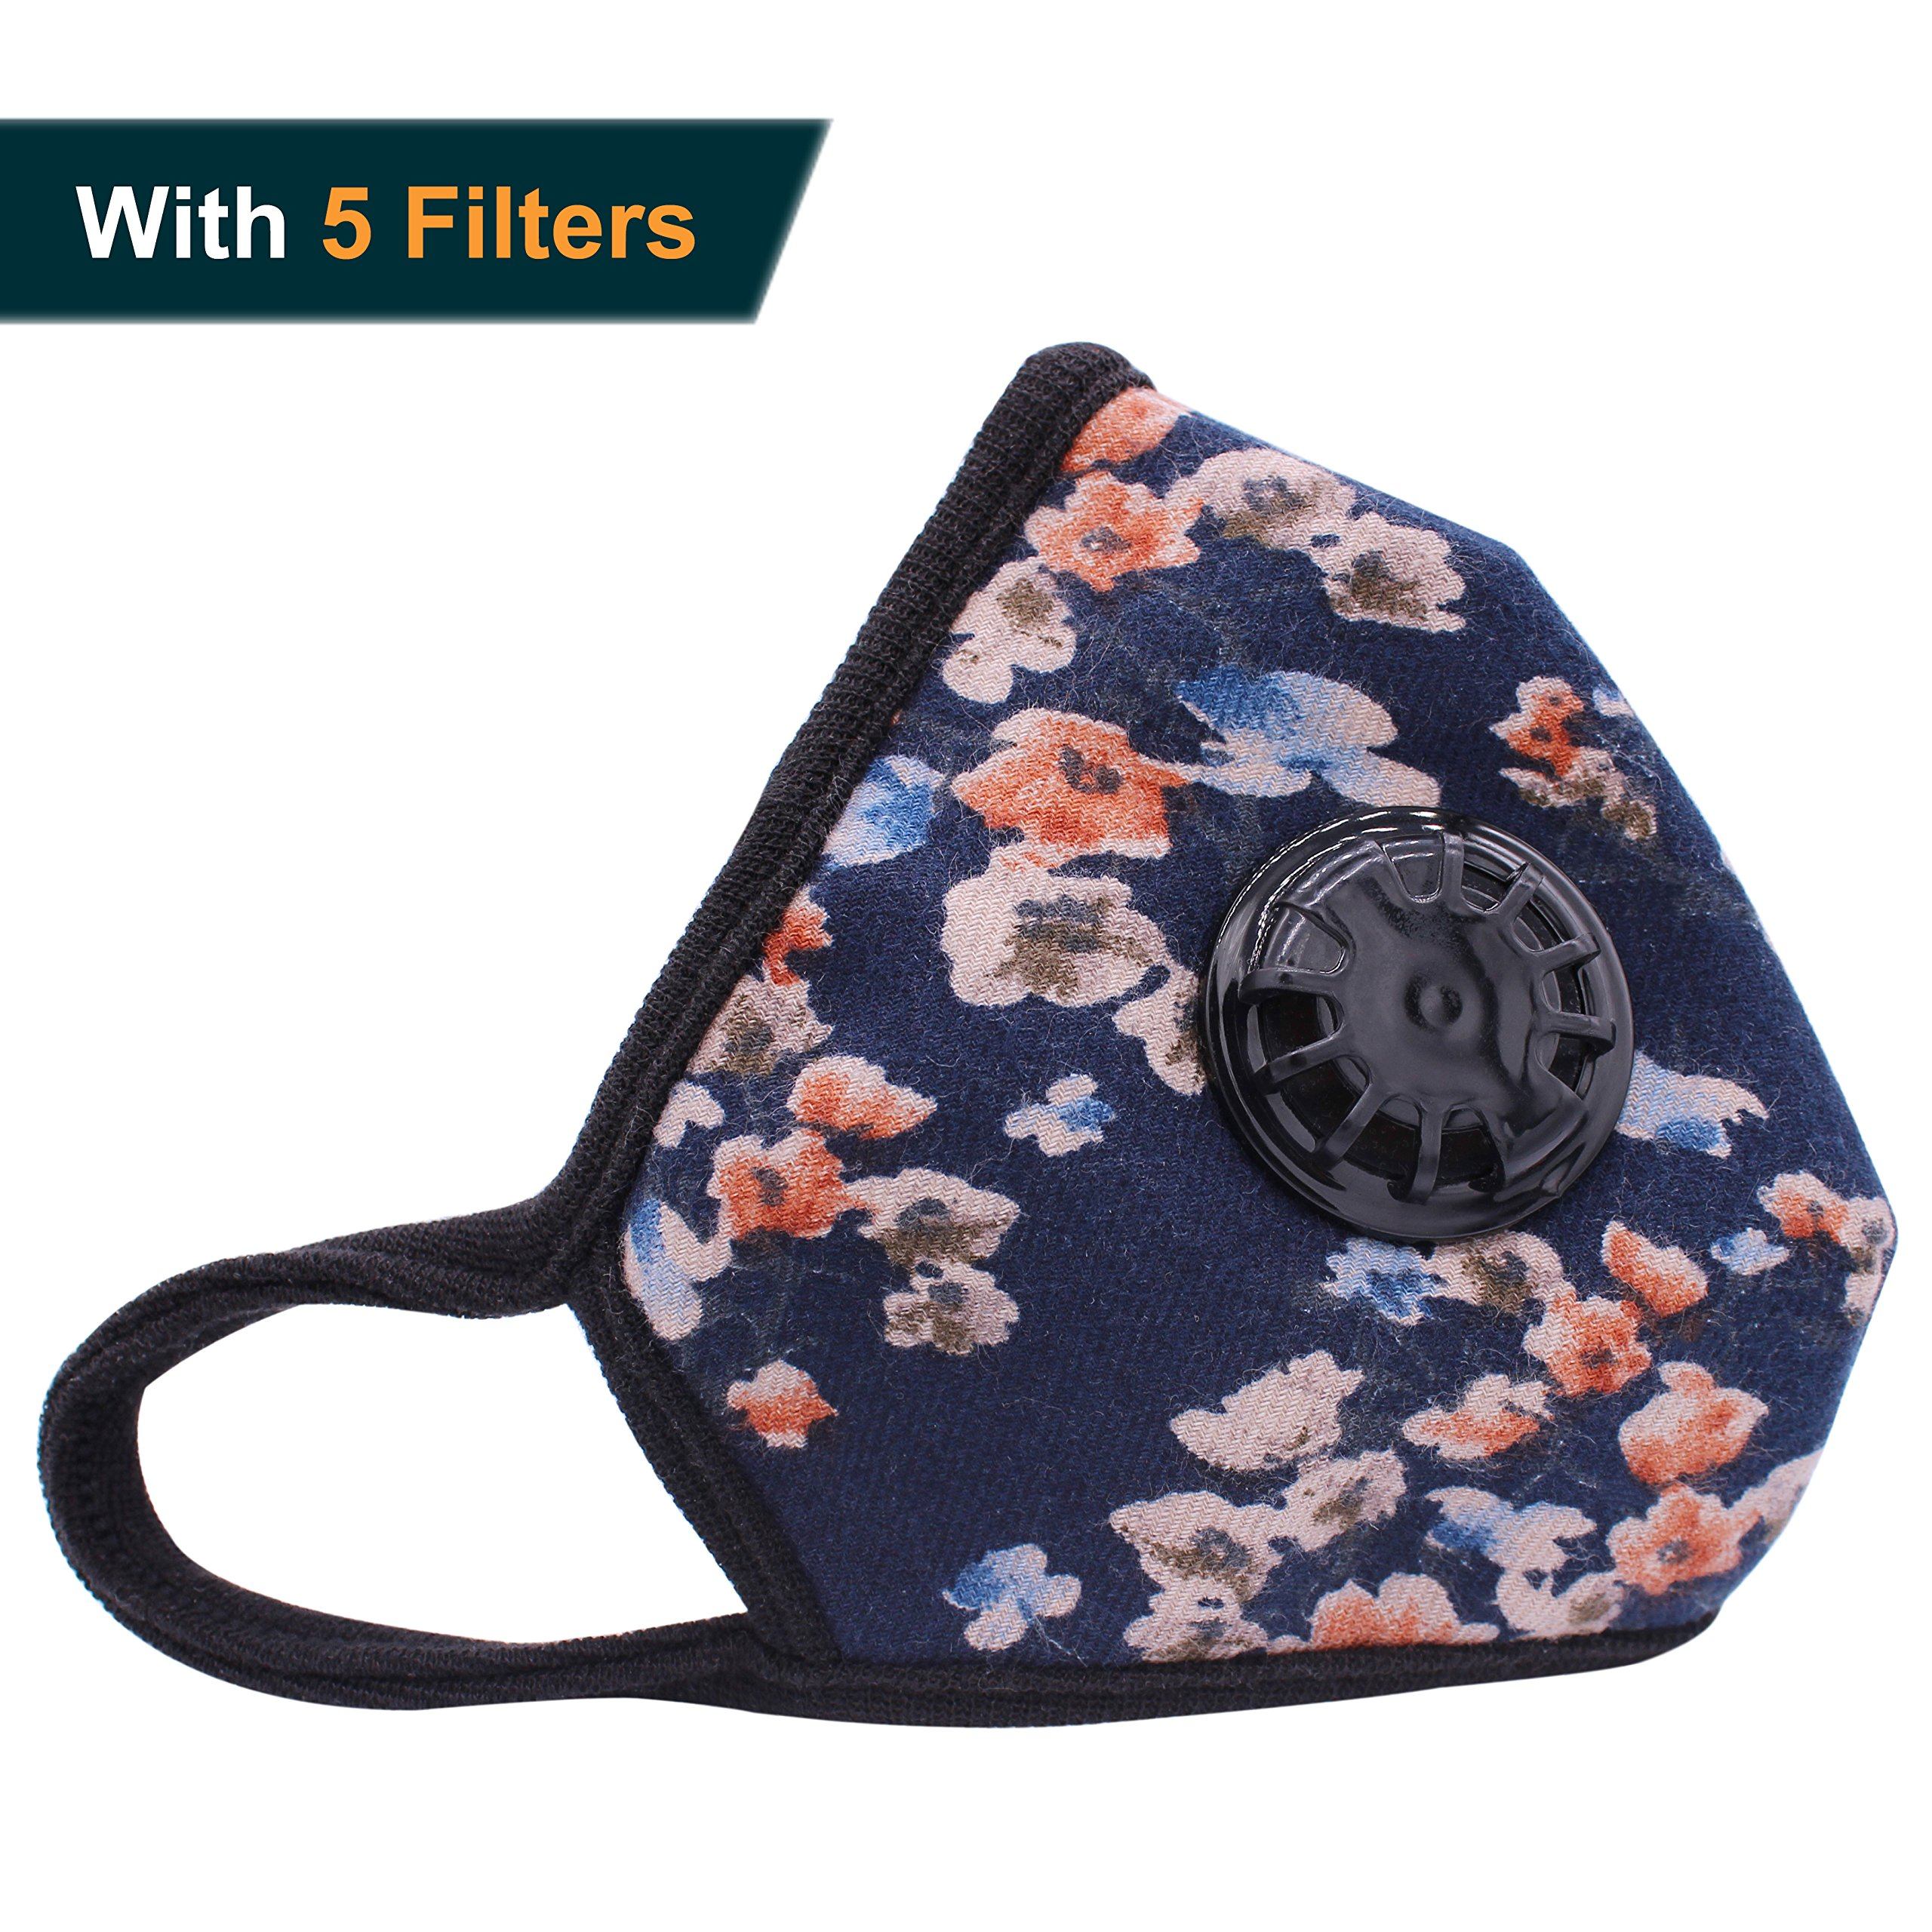 Muryobao Anti Pollution Mask Military Grade N99 Respirator Mask Valve Replacement Filter Washable Cotton Anti Dust Mouth Mask Men Women Blue Flower